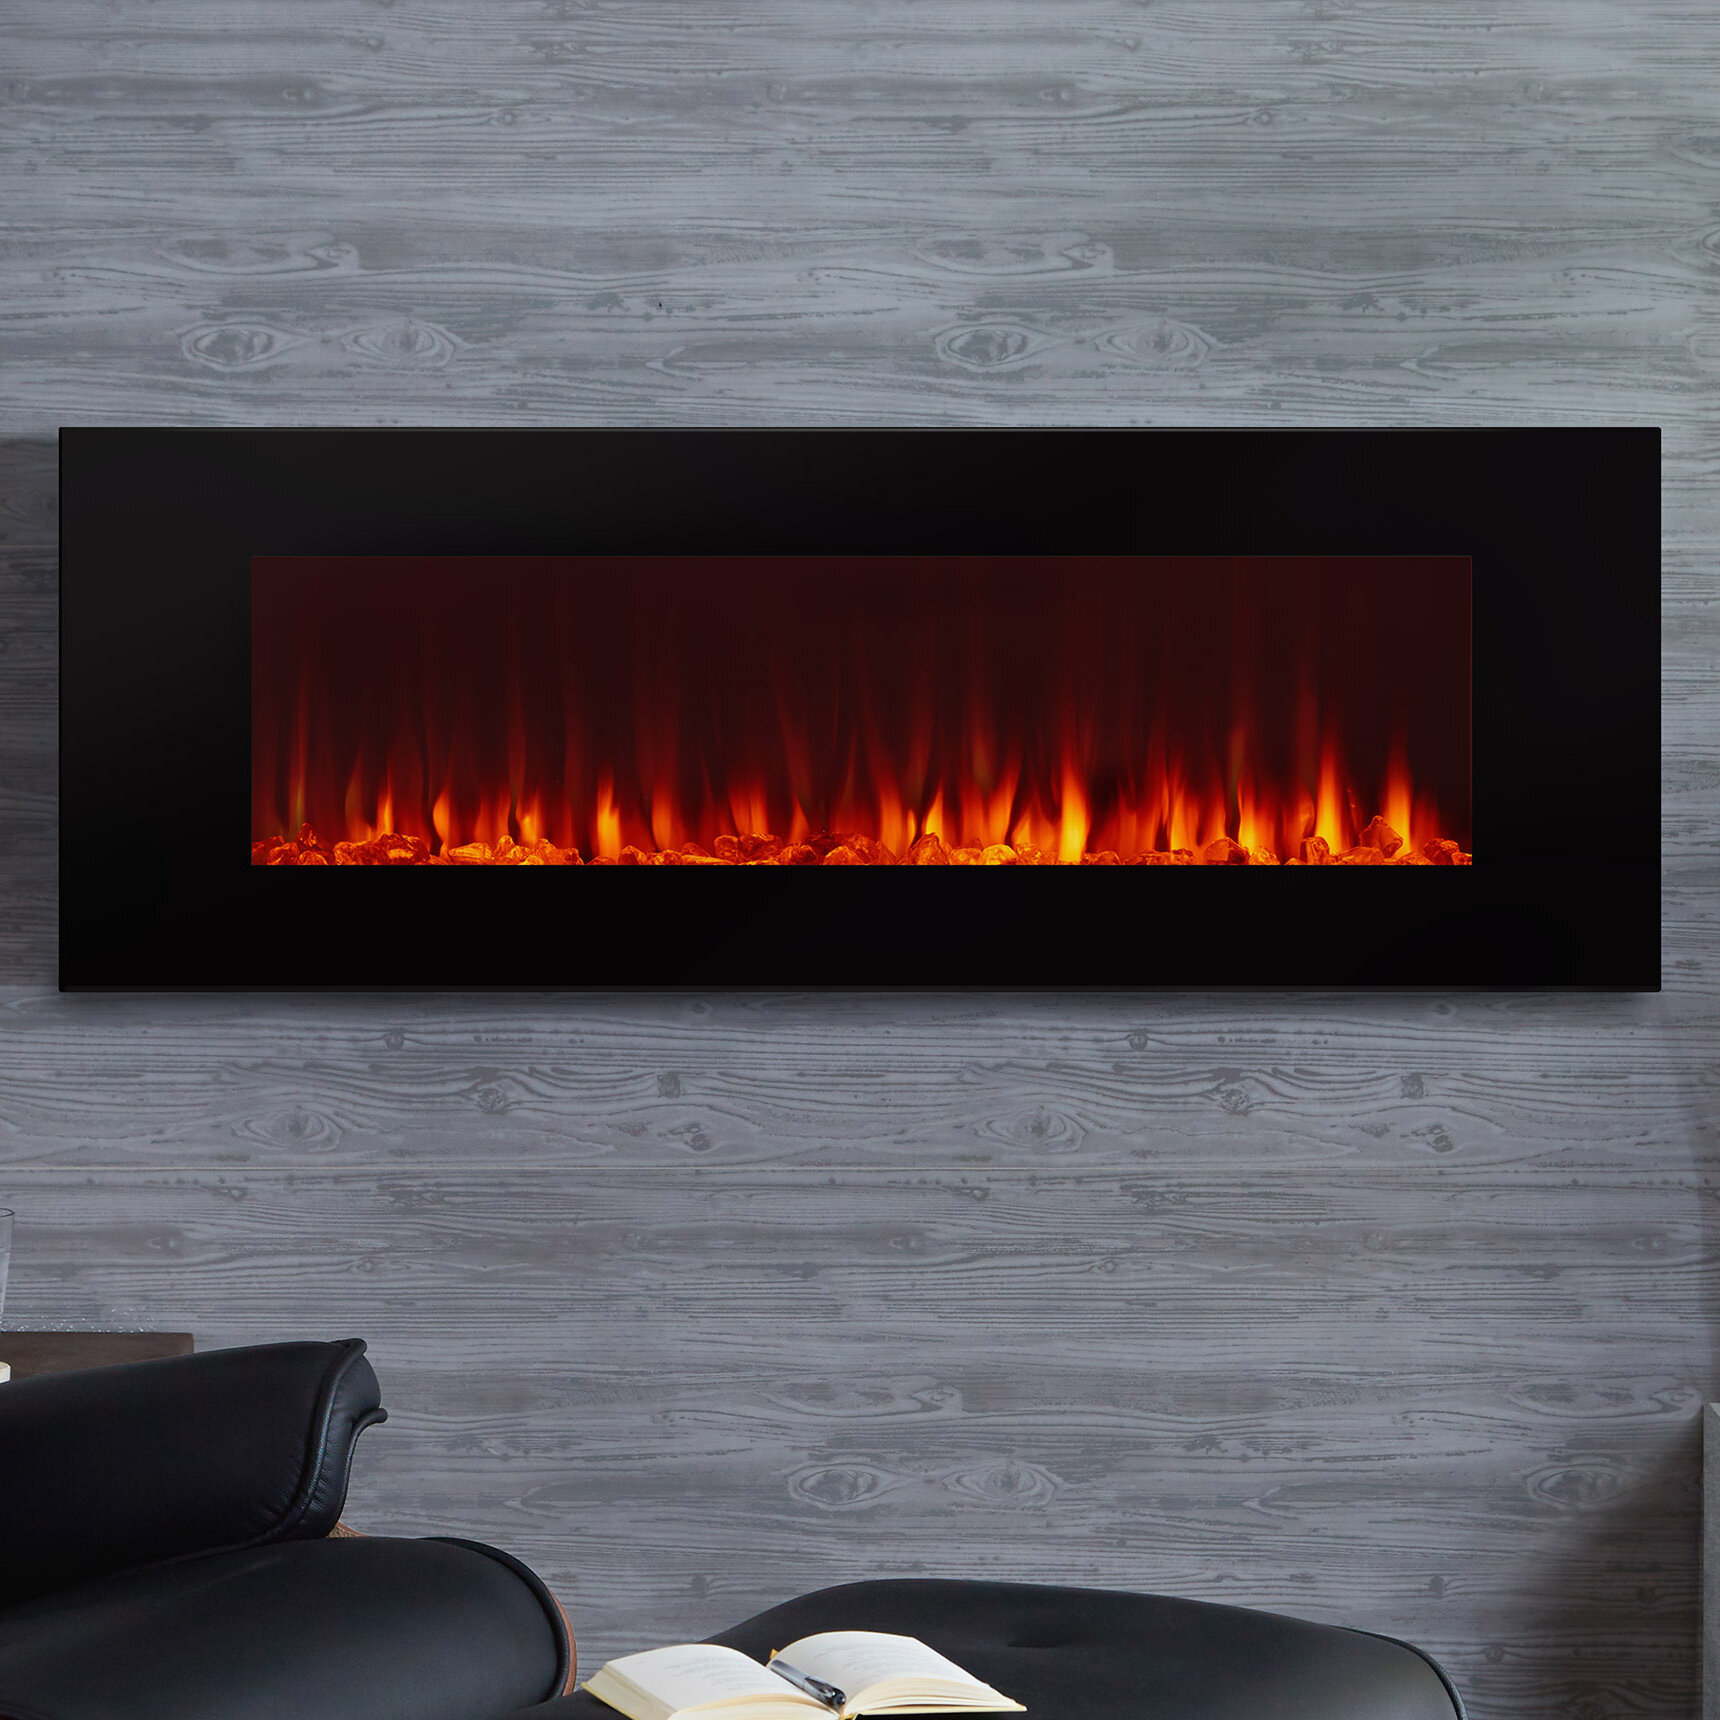 wall burnished mounted cohesion mount fireplace product electric walnut dimplex surround